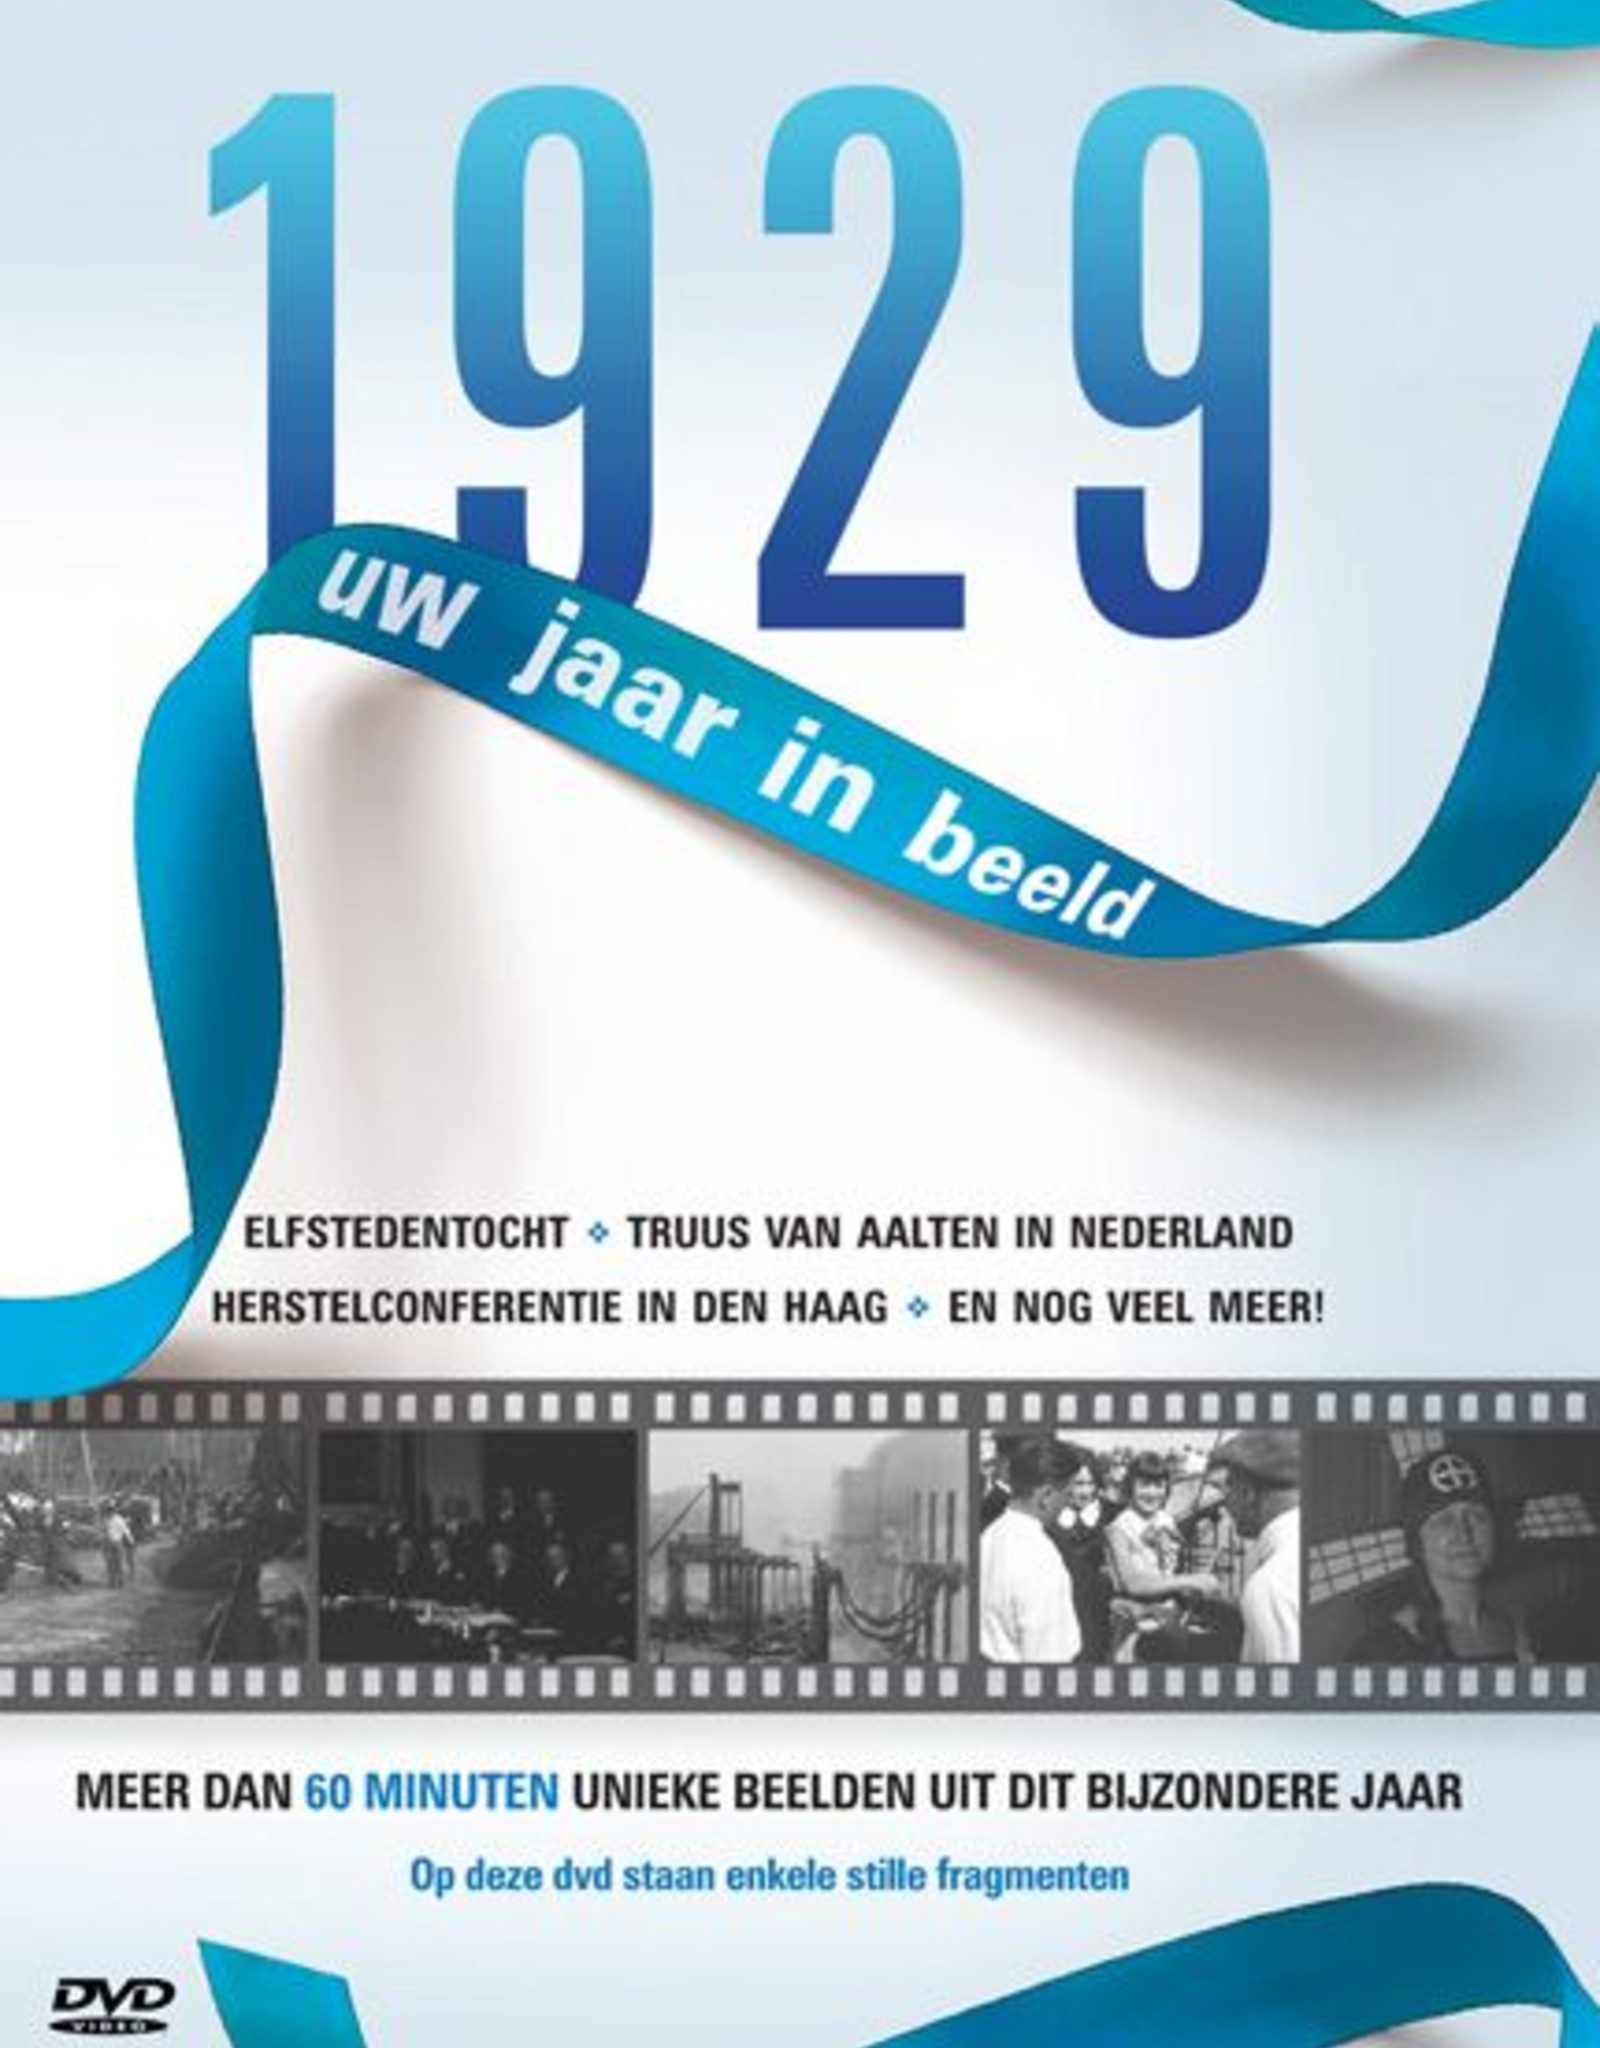 Just Entertainment Uw Jaar in Beeld 1929